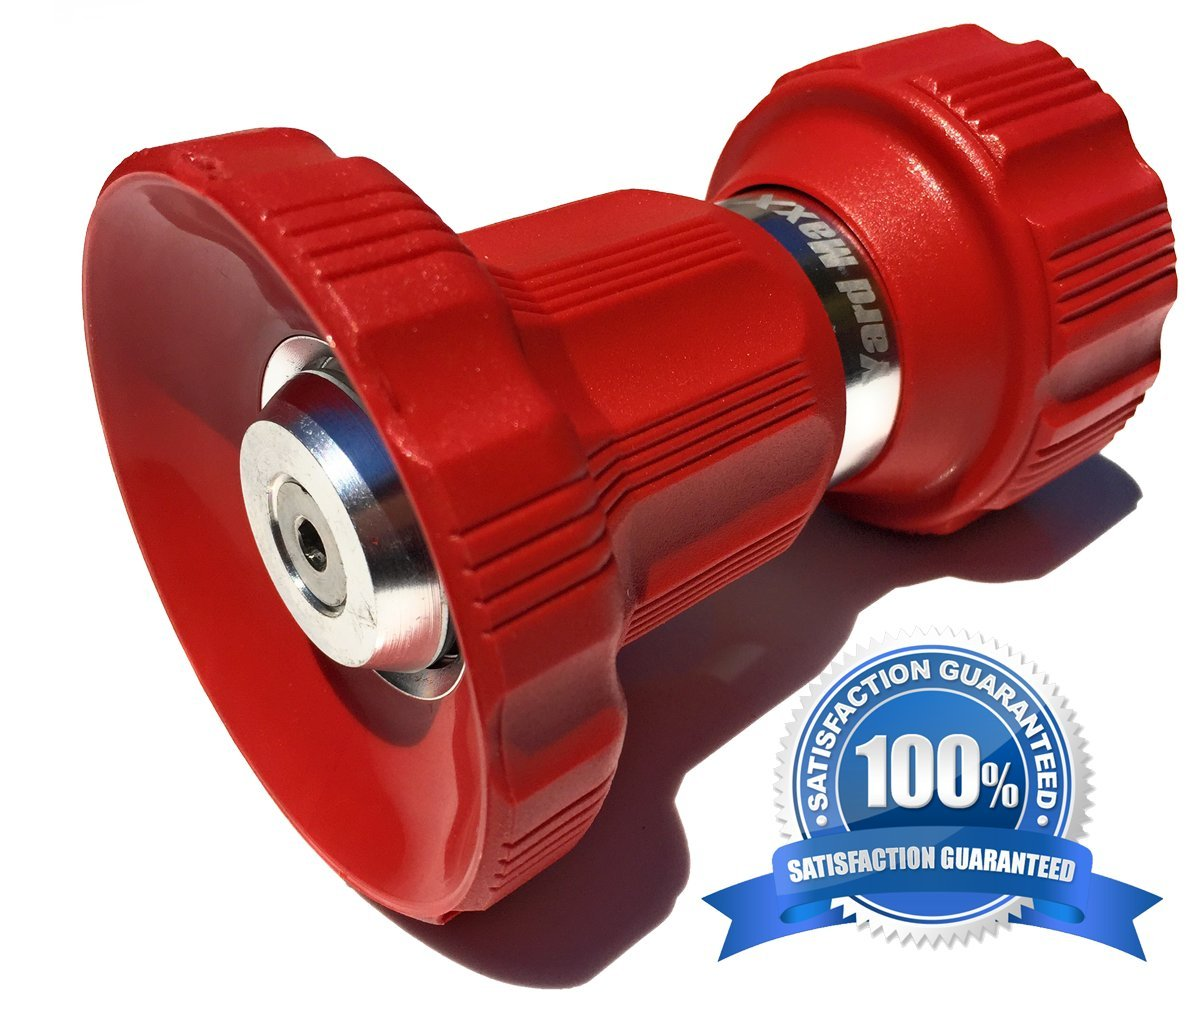 Industrial Grade Fireman Style Garden Hose Nozzle - Twist Nozzle Design- Heavy Duty High Volume Sprayer that's built to last, Best For:Car Wash, Watering Lawn (Red)